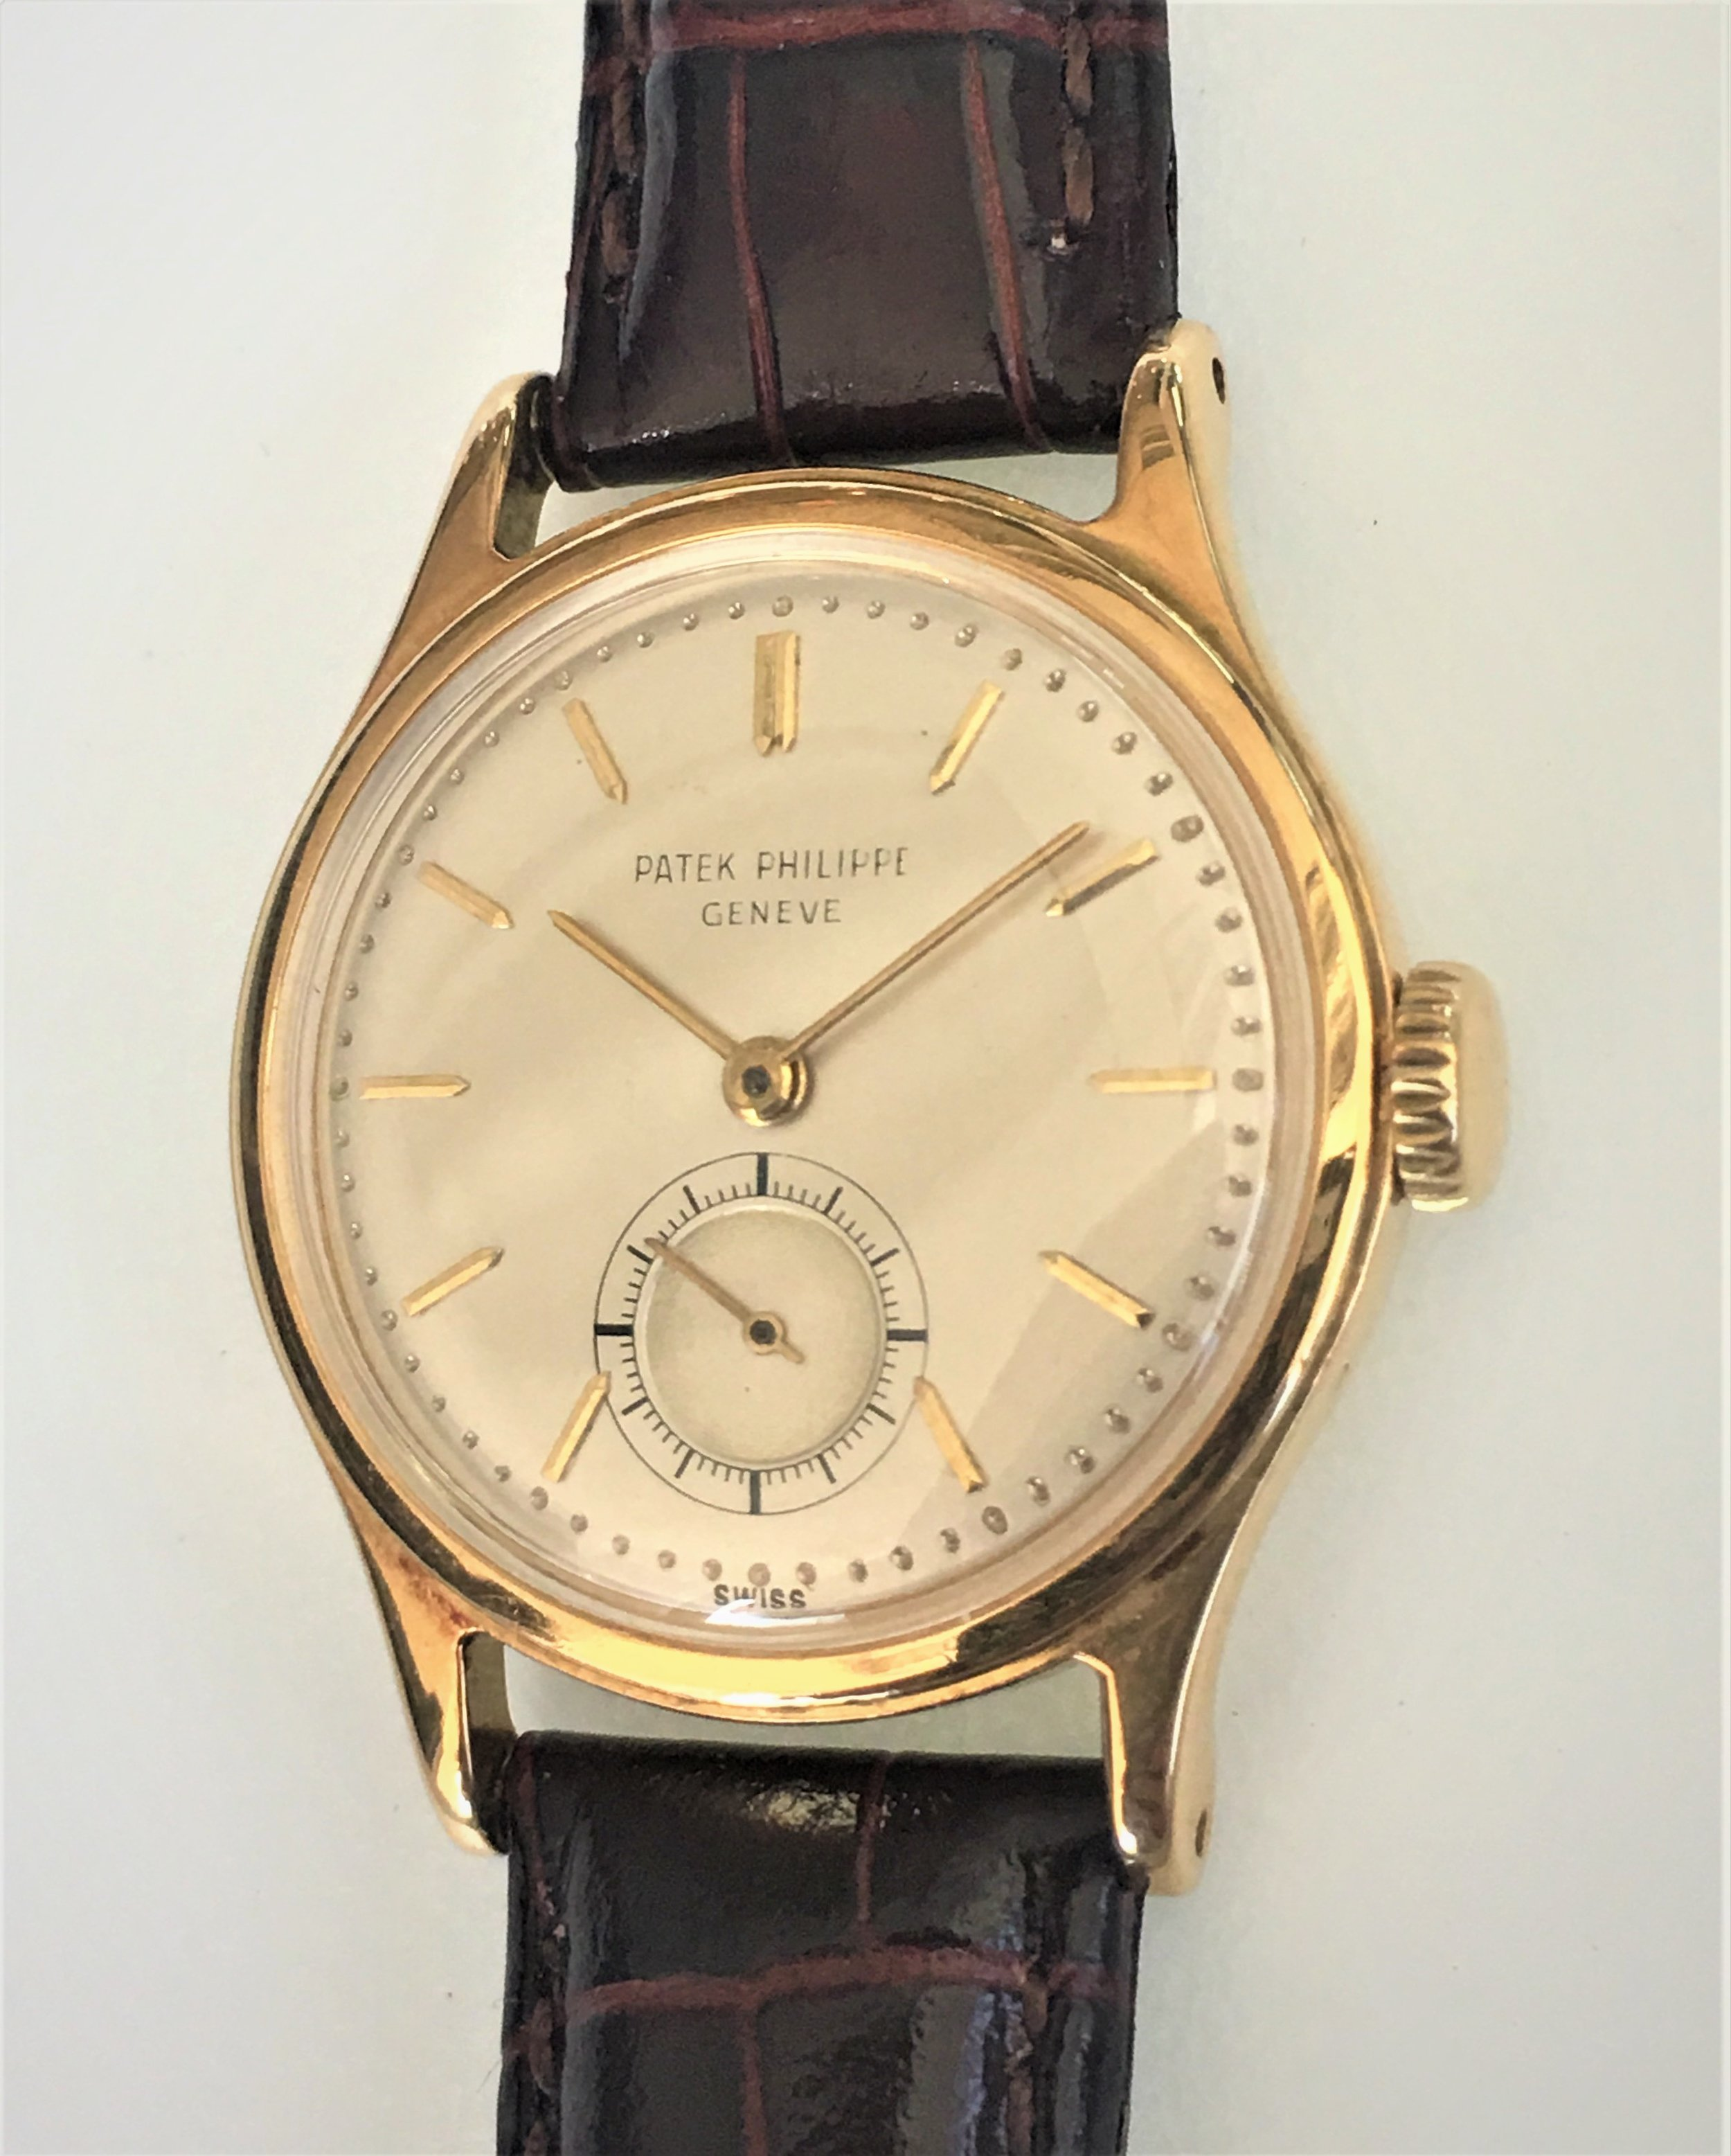 Watch Patek Phillippe Geneve Gold. Tampa Jewelry Store Watch Repair